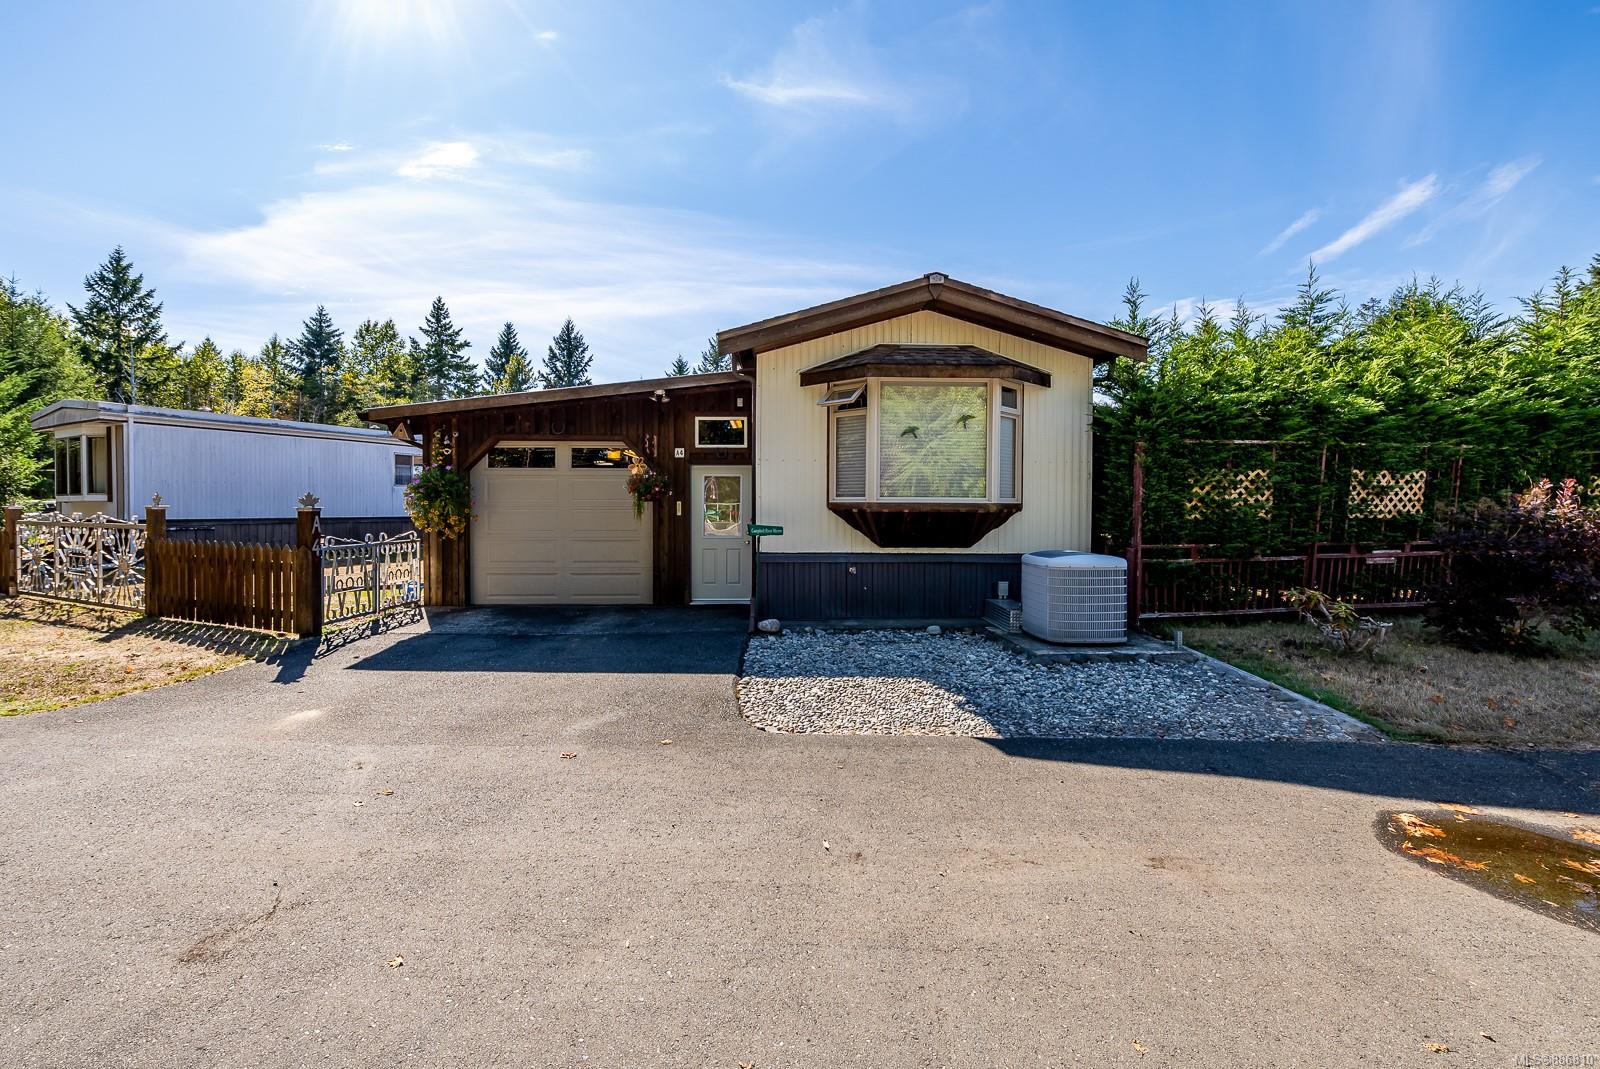 Welcome to the well-maintained, Saratoga Beach Mobile Home Park! This move-in ready unit is located in the highly sought after area on the Eastern Coast of Vancouver Island. Within close distance to the Oyster River, Saratoga Beach, a 9-hole golf course, grocery store, liquor store, and medical clinic - you are close to everything you need. Step inside and notice the ample cabinet and counter space in the kitchen with stainless steel appliances. Vaulted ceilings carry throughout the kitchen, dining room and into the living room which includes a big bay window to allow in optimal natural lighting. This unit features two comfortable bedrooms, with an additional third bedroom or den. A large connected garage or potential workshop with plenty of storage space. Bonus features include a heat pump with forced air, a large garage/workshop with extra storage, and a covered back deck overlooking the open common property.